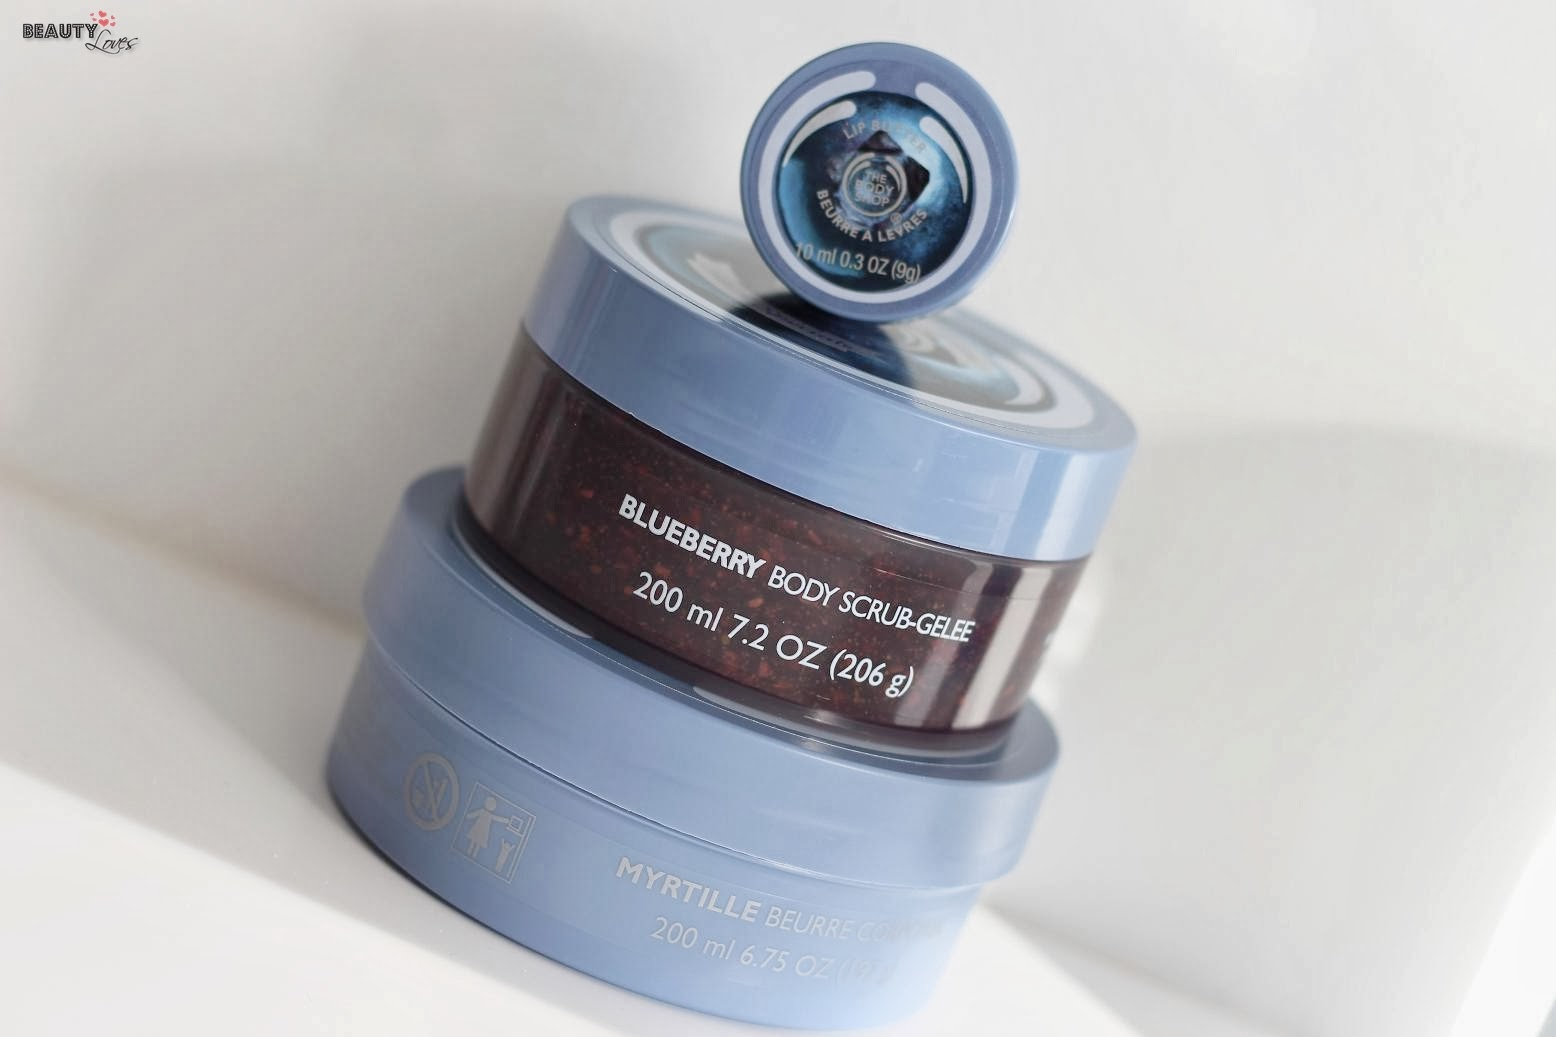 The Body Shop Blueberry